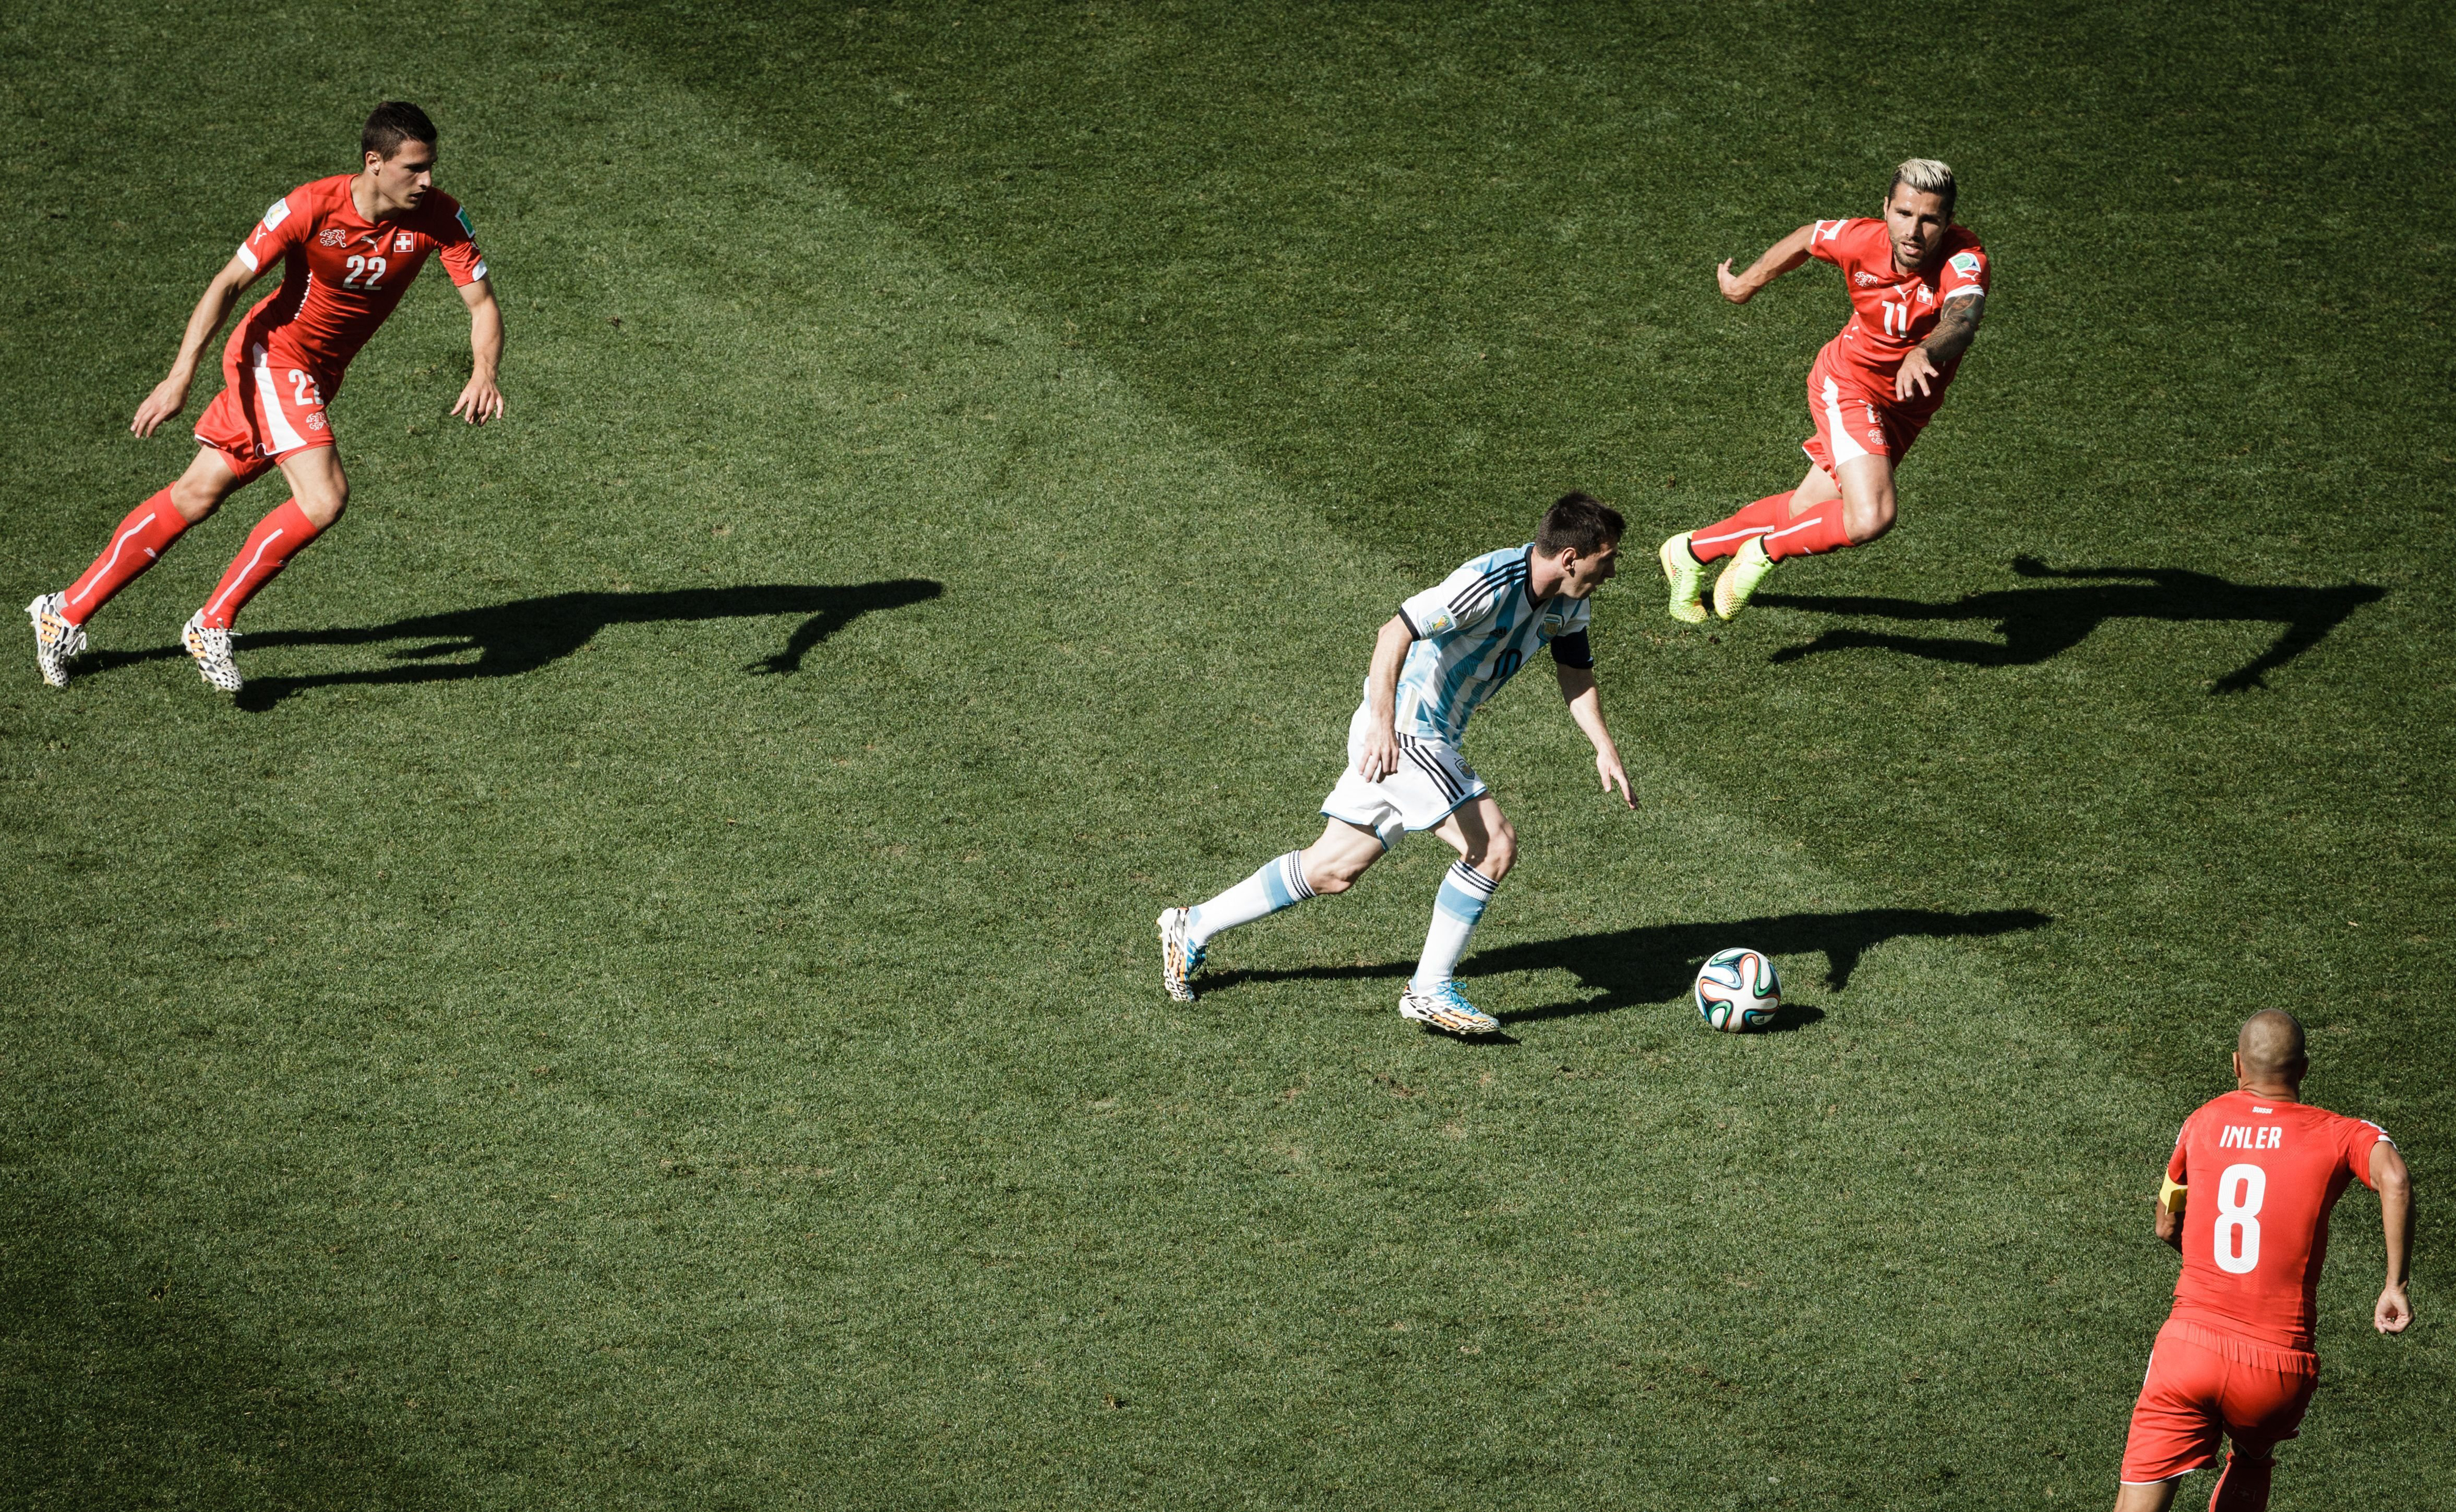 Messi dribbles at the Arena Corinthians in Sao Paulo, Brazil on July 1, 2014.